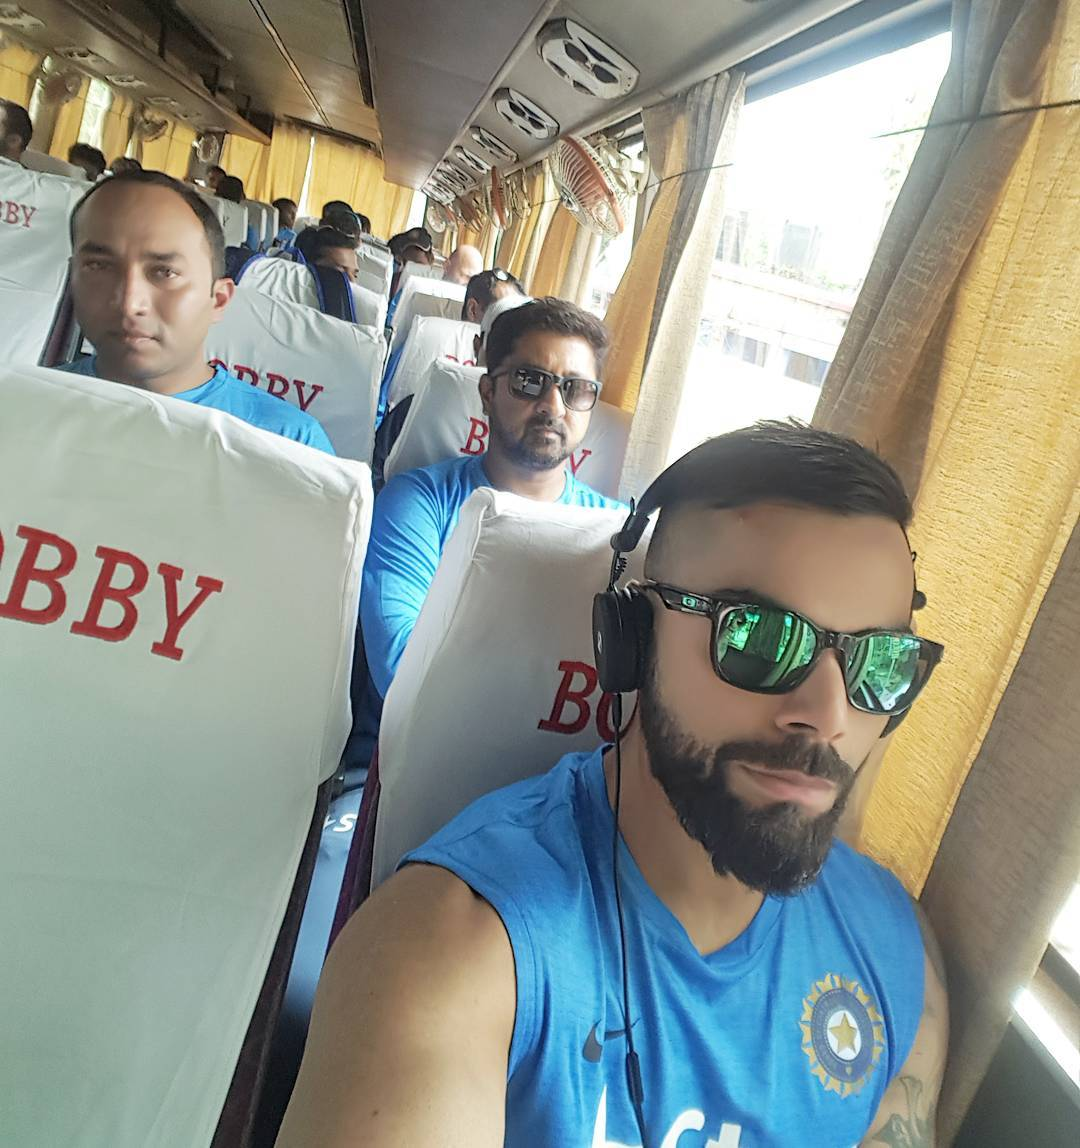 Back to the team bus! Some of the best jokes and memories are courtesy the team bus. #TeamIndia #TeamBusDiaries